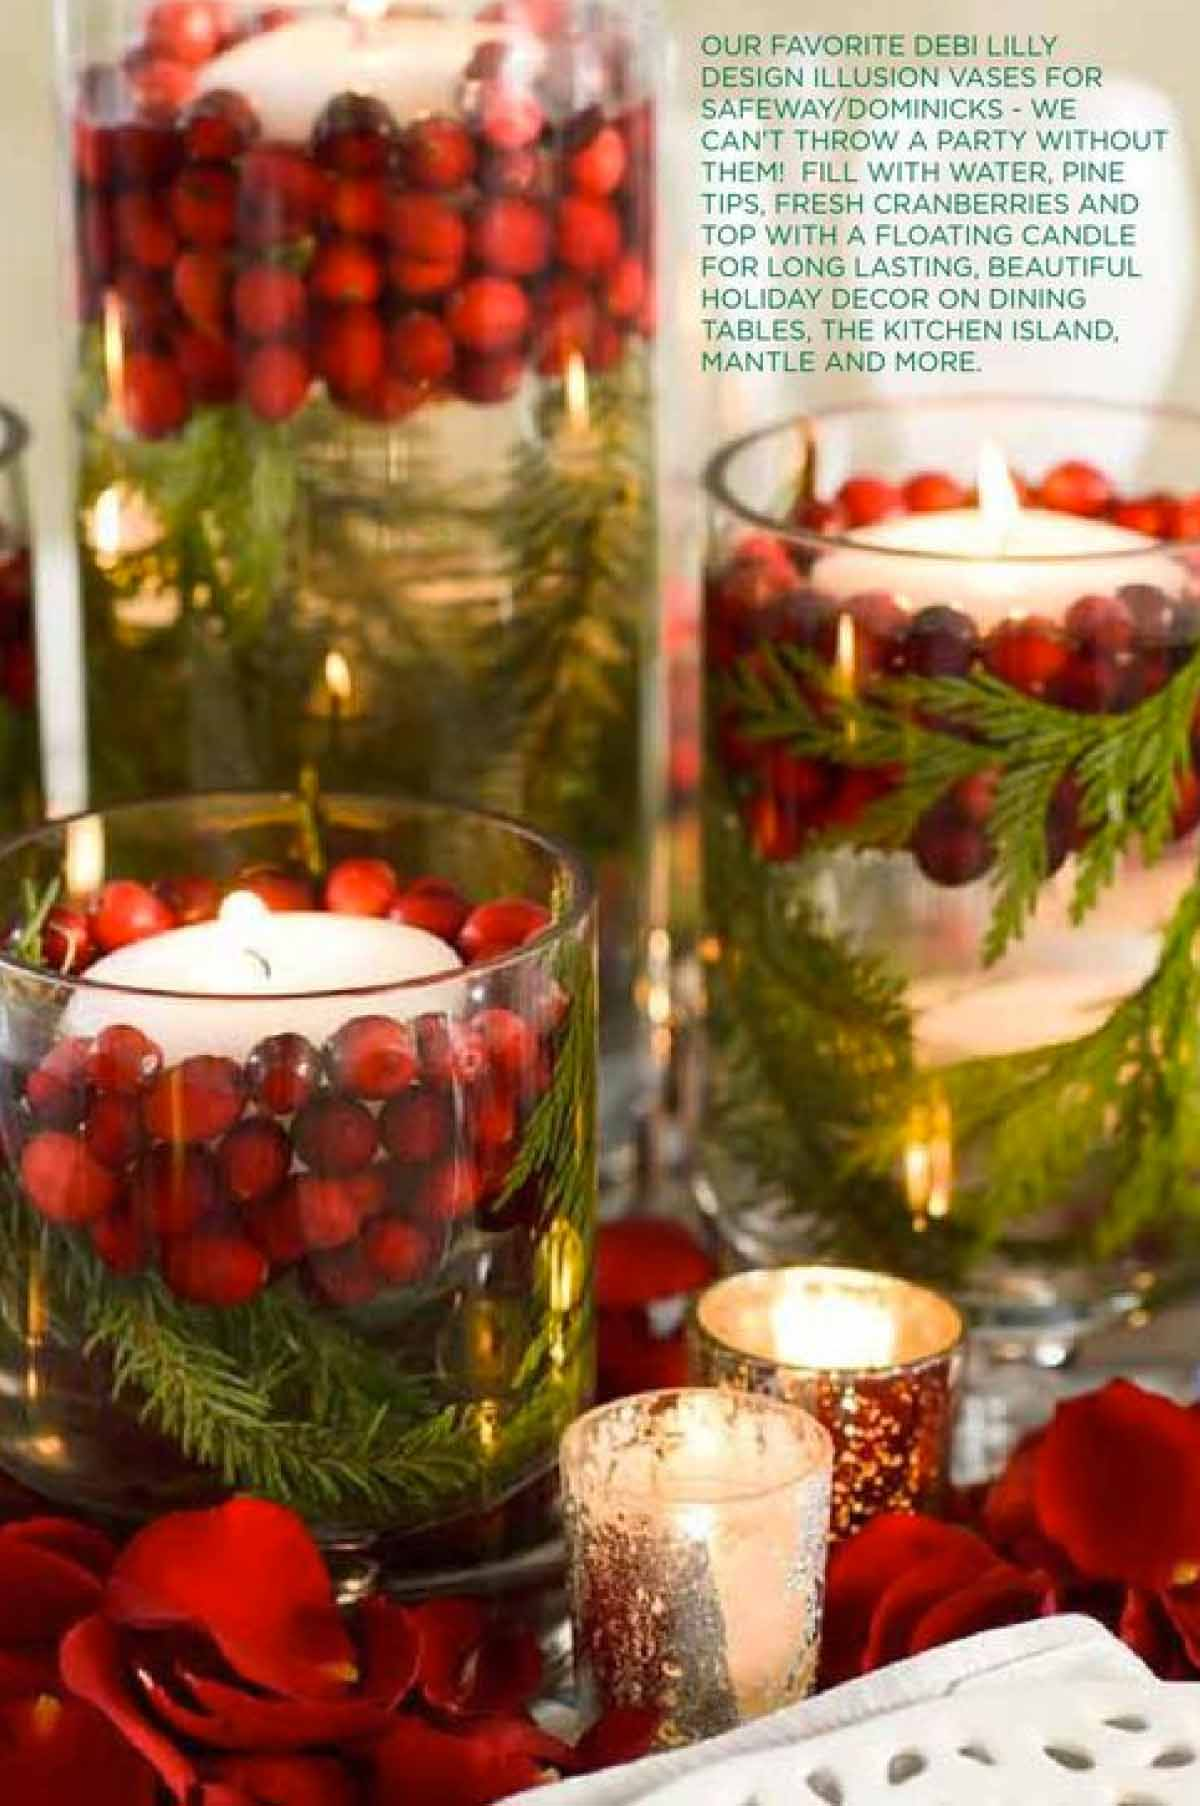 Design insights for Christmas candles and ornaments